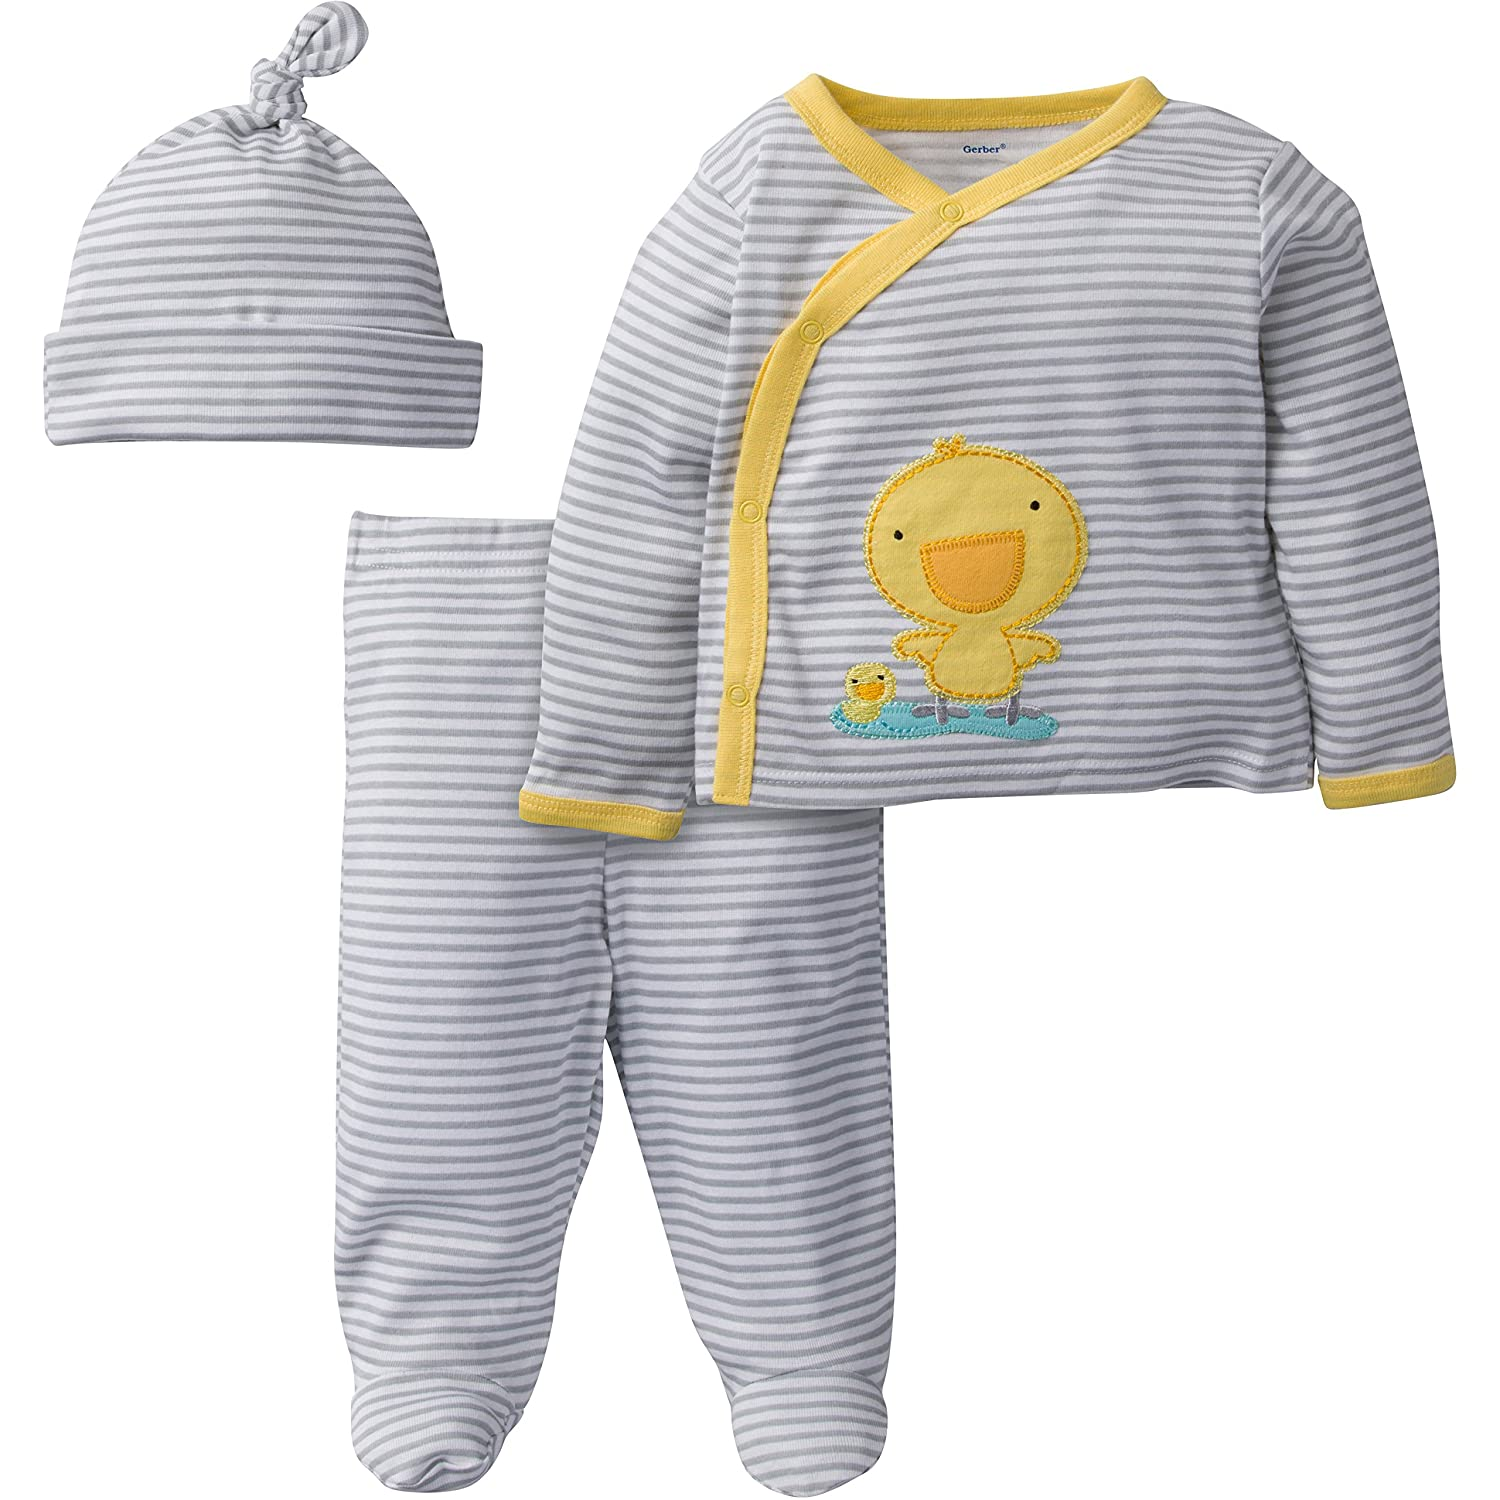 Gerber Baby 3 Piece Side Snap Mitten Cuff Shirt, Footed Pant & Cap Gerber Children's Apparel FA171019N1